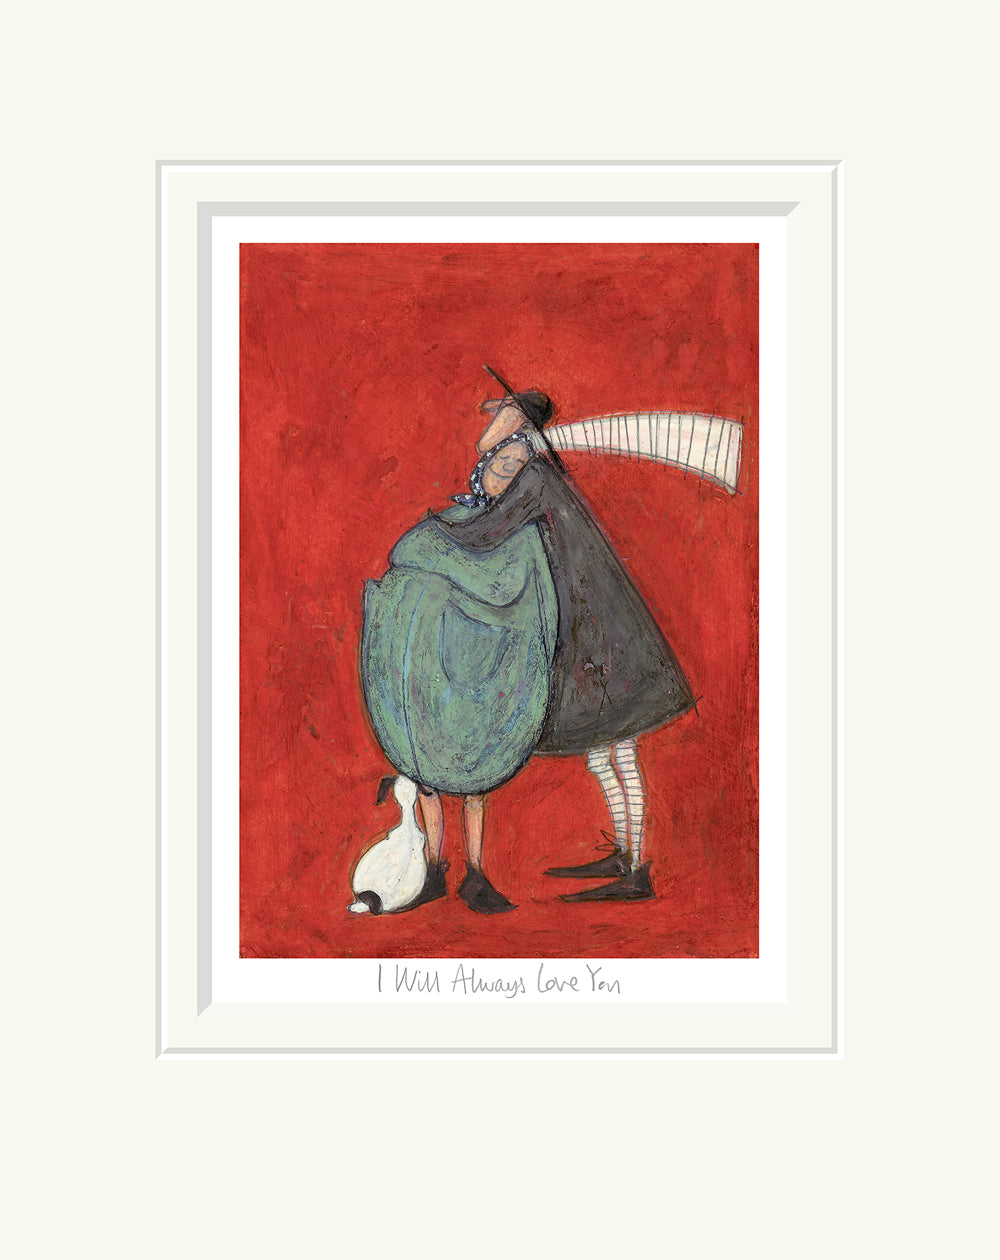 I Will Always Love You by Sam Toft